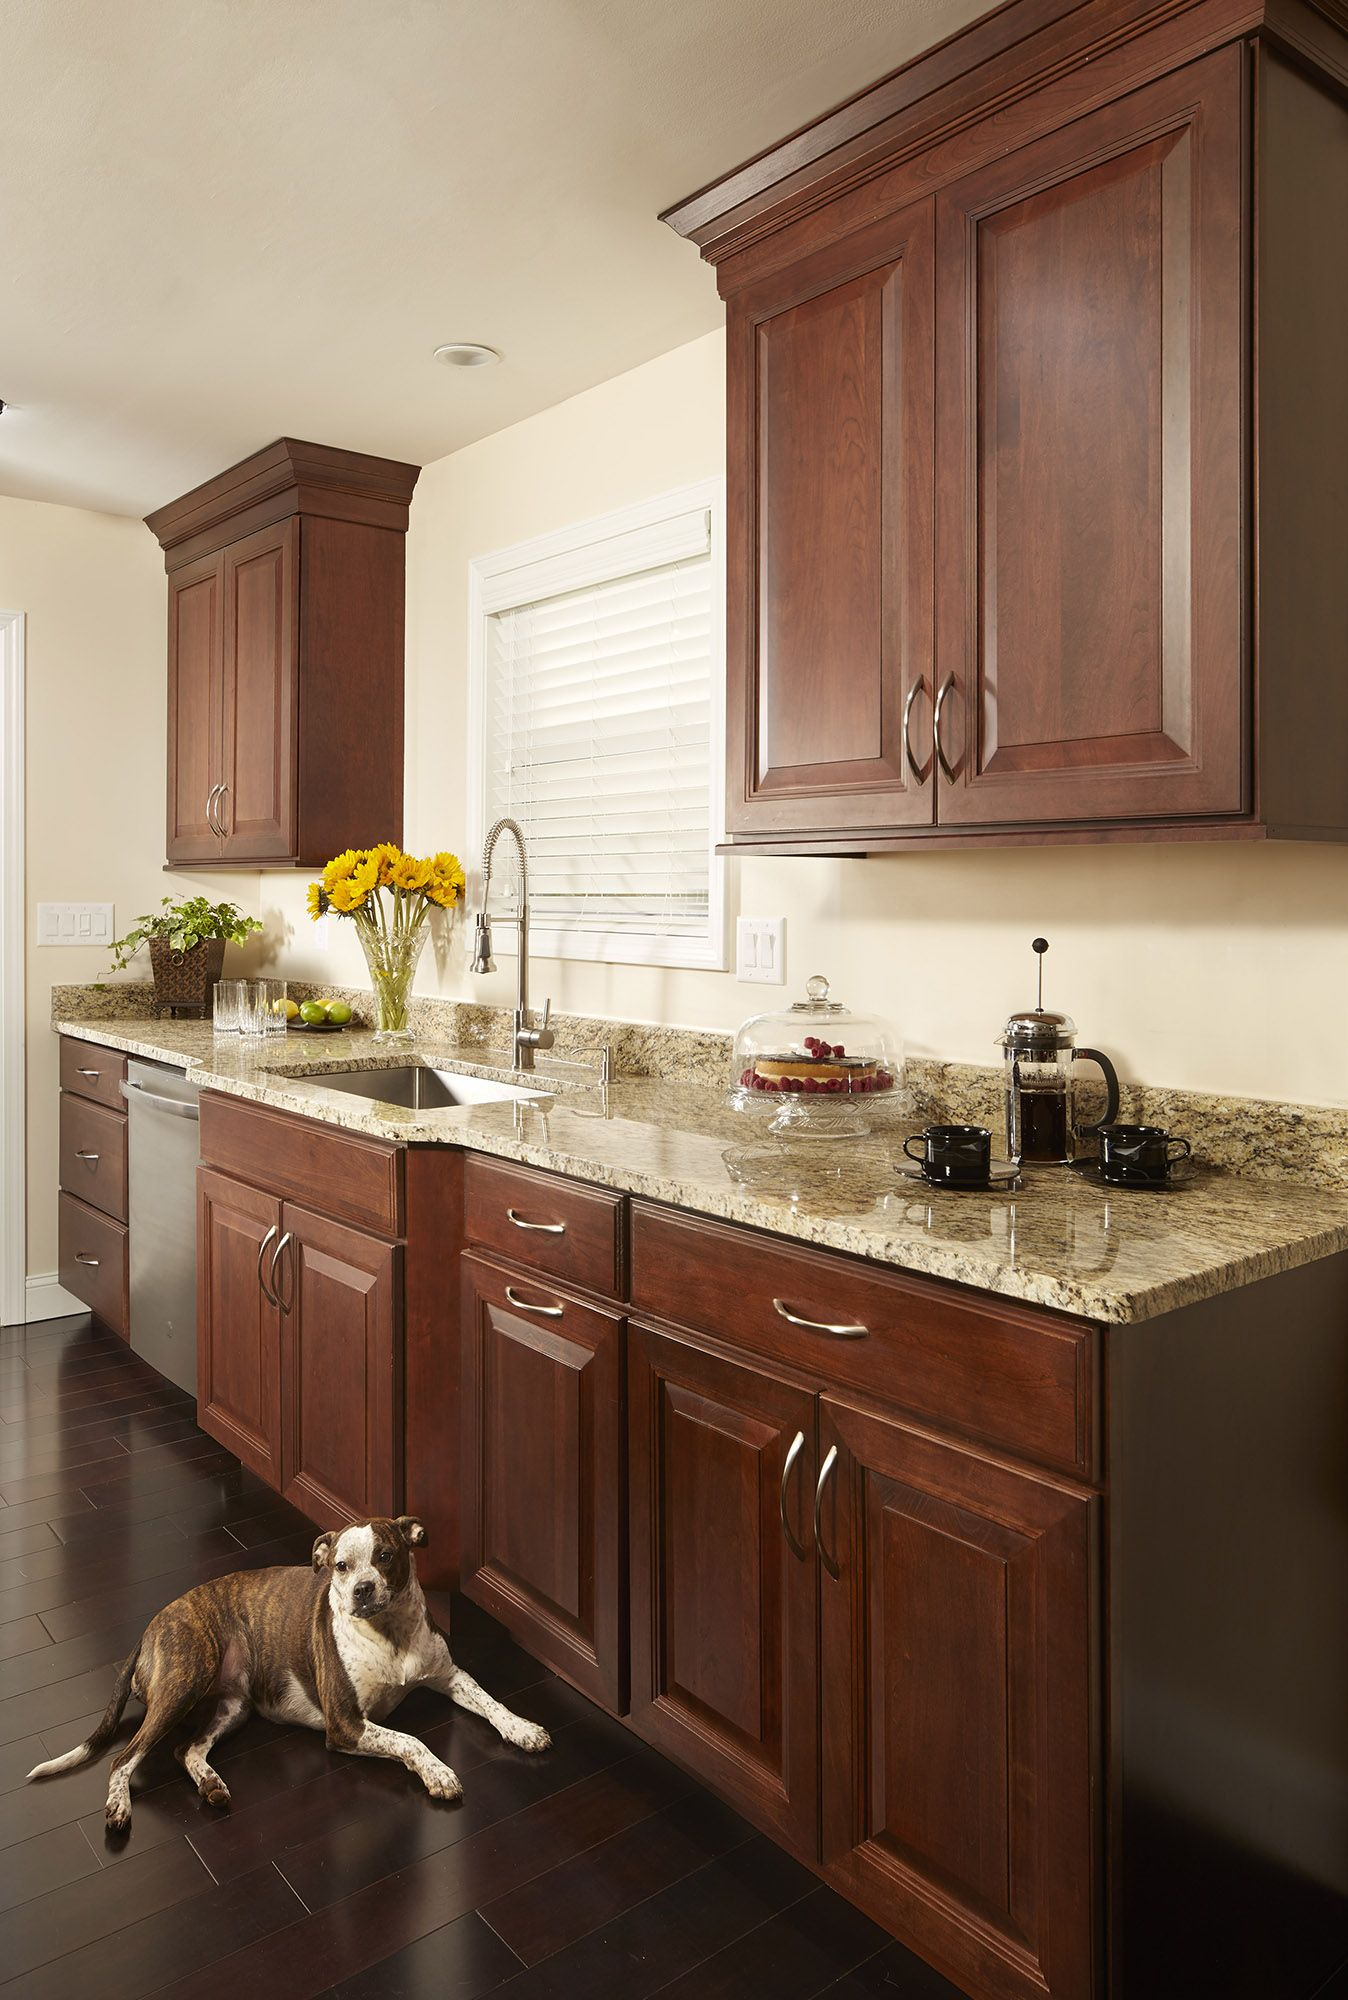 Cherry Shaker Cabinets Kitchen Remodeling Photos Kitchen Cabinets Cherry Wood Kitchen Cabinets Kitchen Remodel